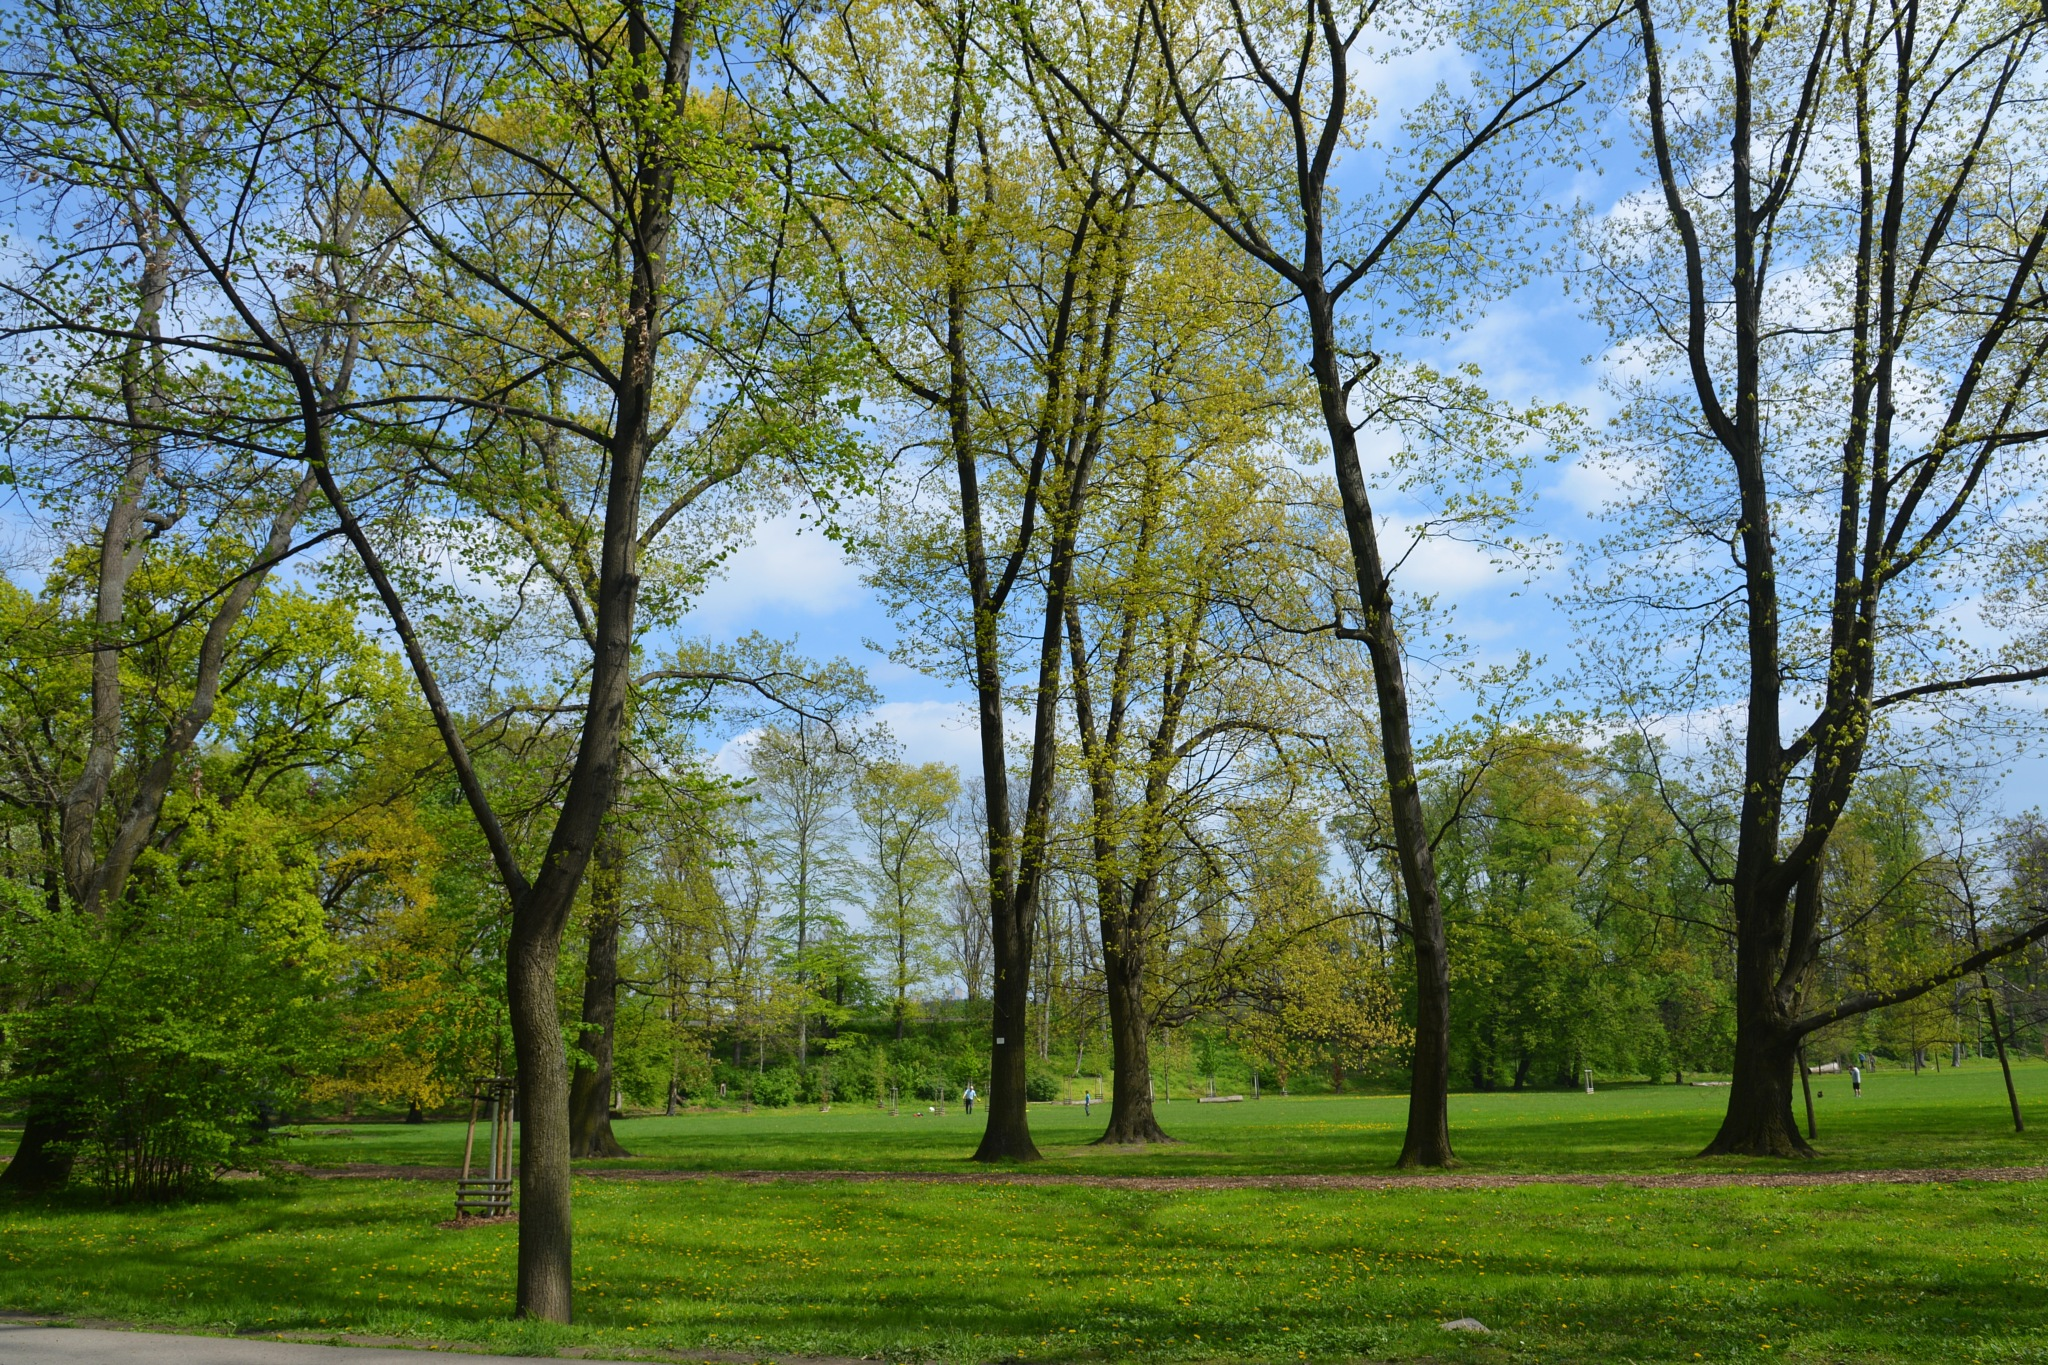 Beauty of Spring Park. by marcel cintalan